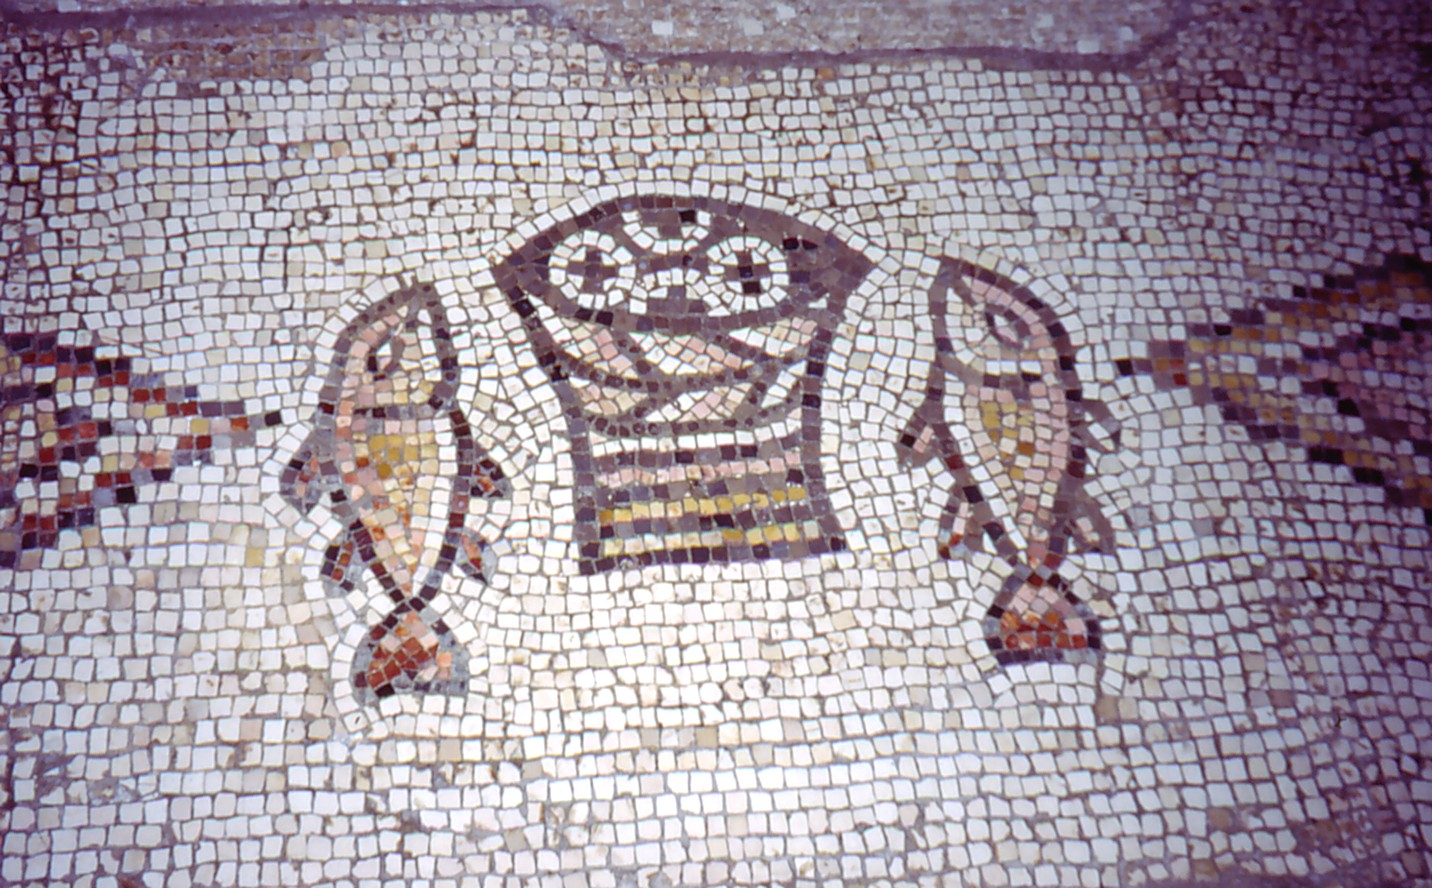 Mosaic of loaves and fishes